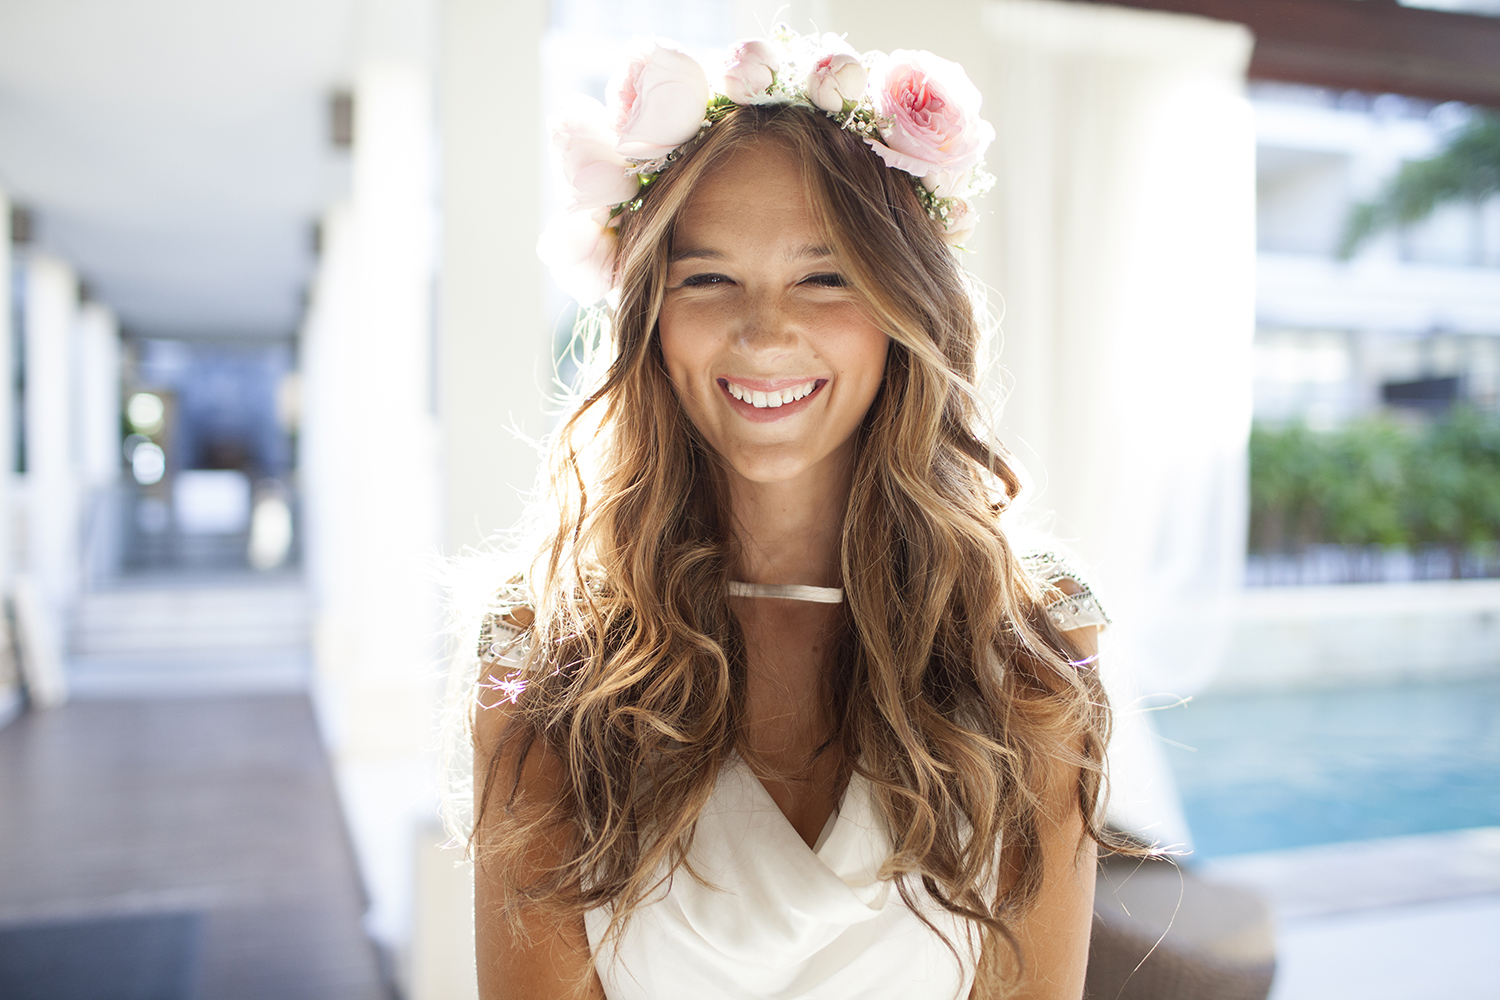 Woman With Flower Crown on Her Head